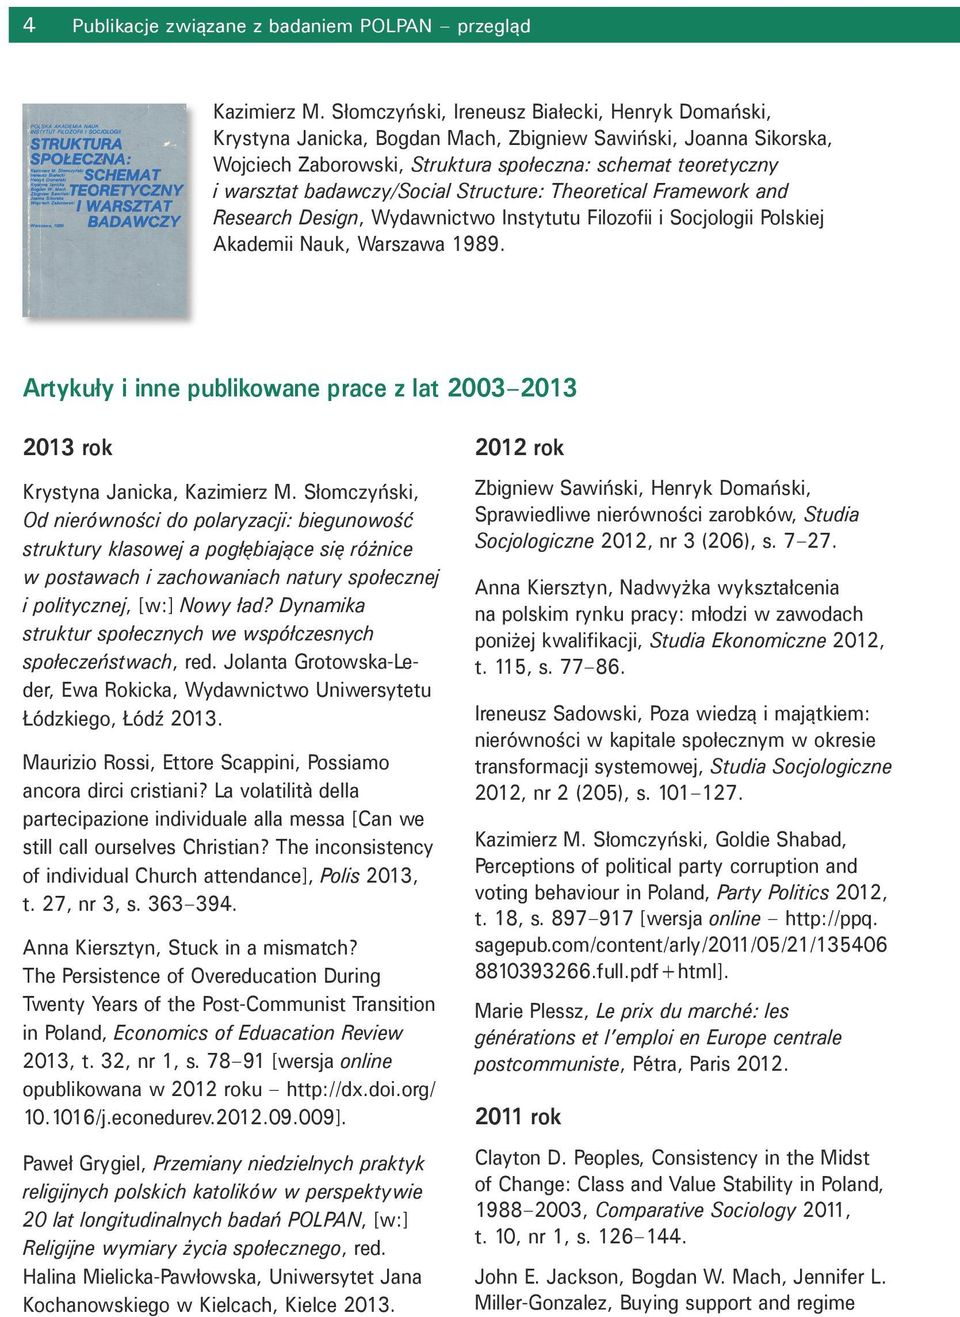 badawczy/social Structure: Theoretical Framework and Research Design, Wydawnictwo Instytutu Filozofii i Socjologii Polskiej Akademii Nauk, Warszawa 1989.